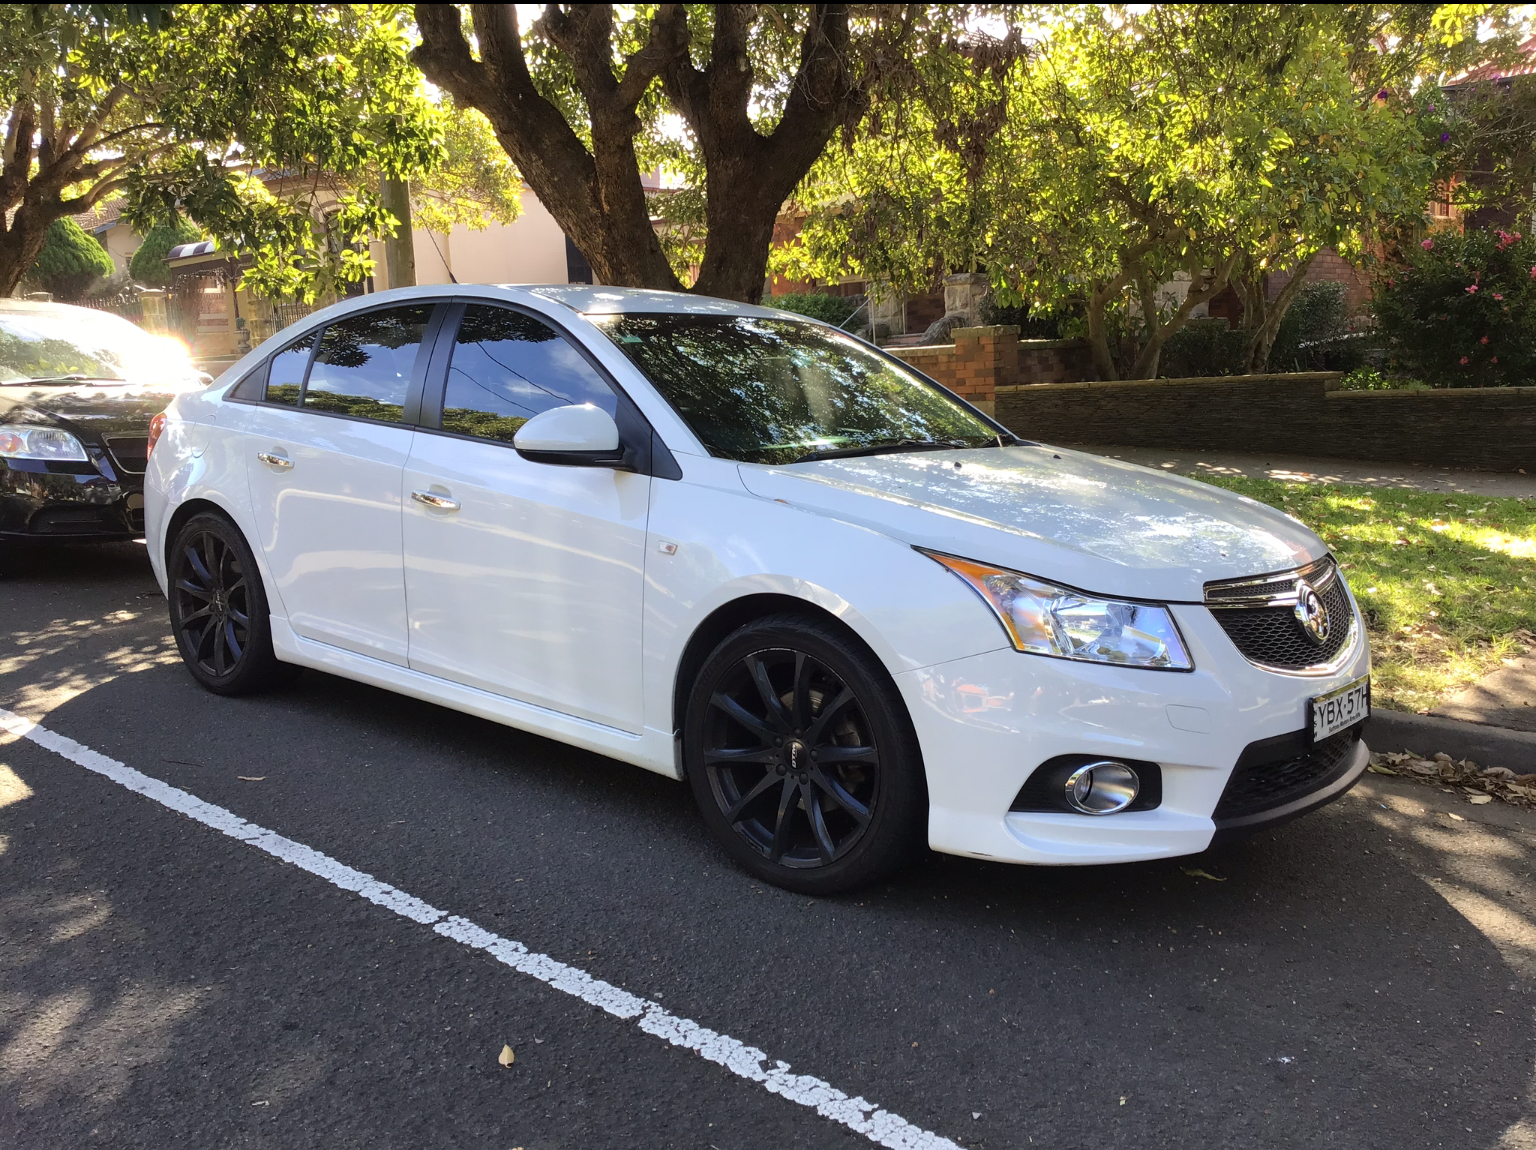 Picture of Johanna Paola's 2014 Holden Cruz